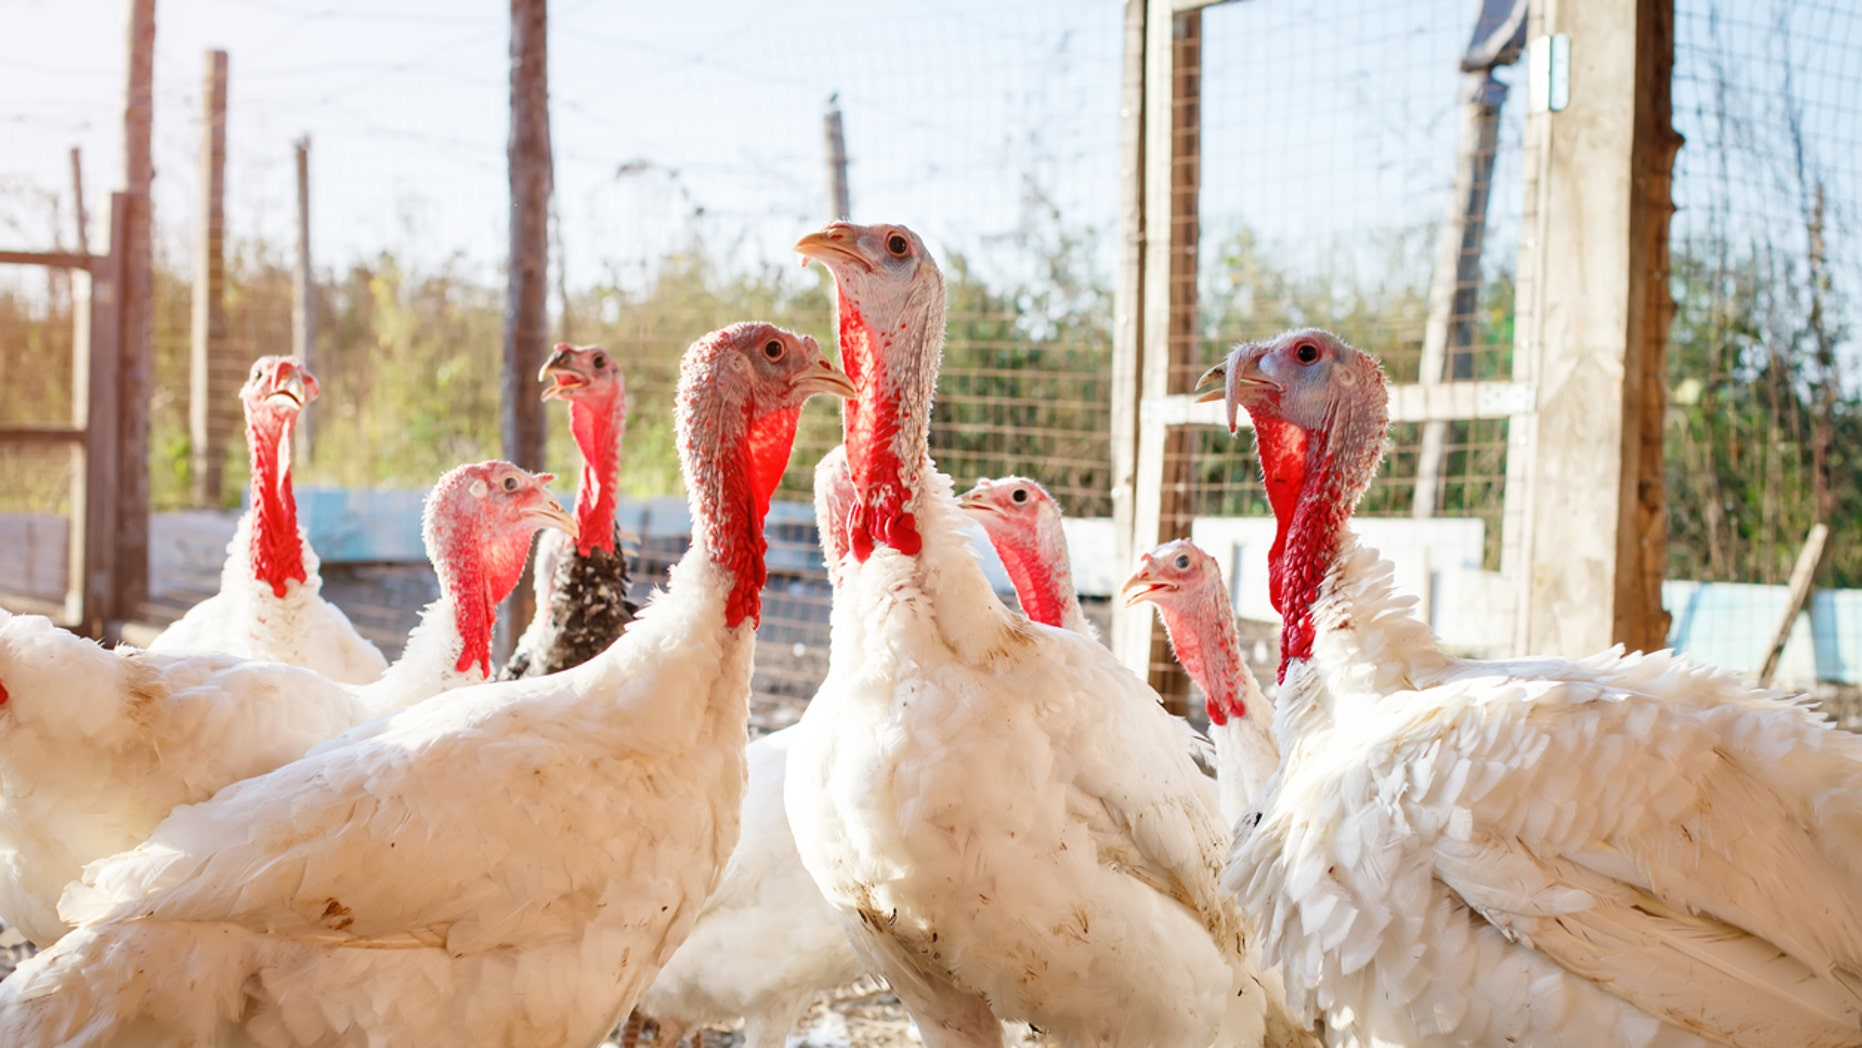 A recent salmonella outbreak involving turkey products has killed at least one person and sickened more than 160 others, public health officials say.